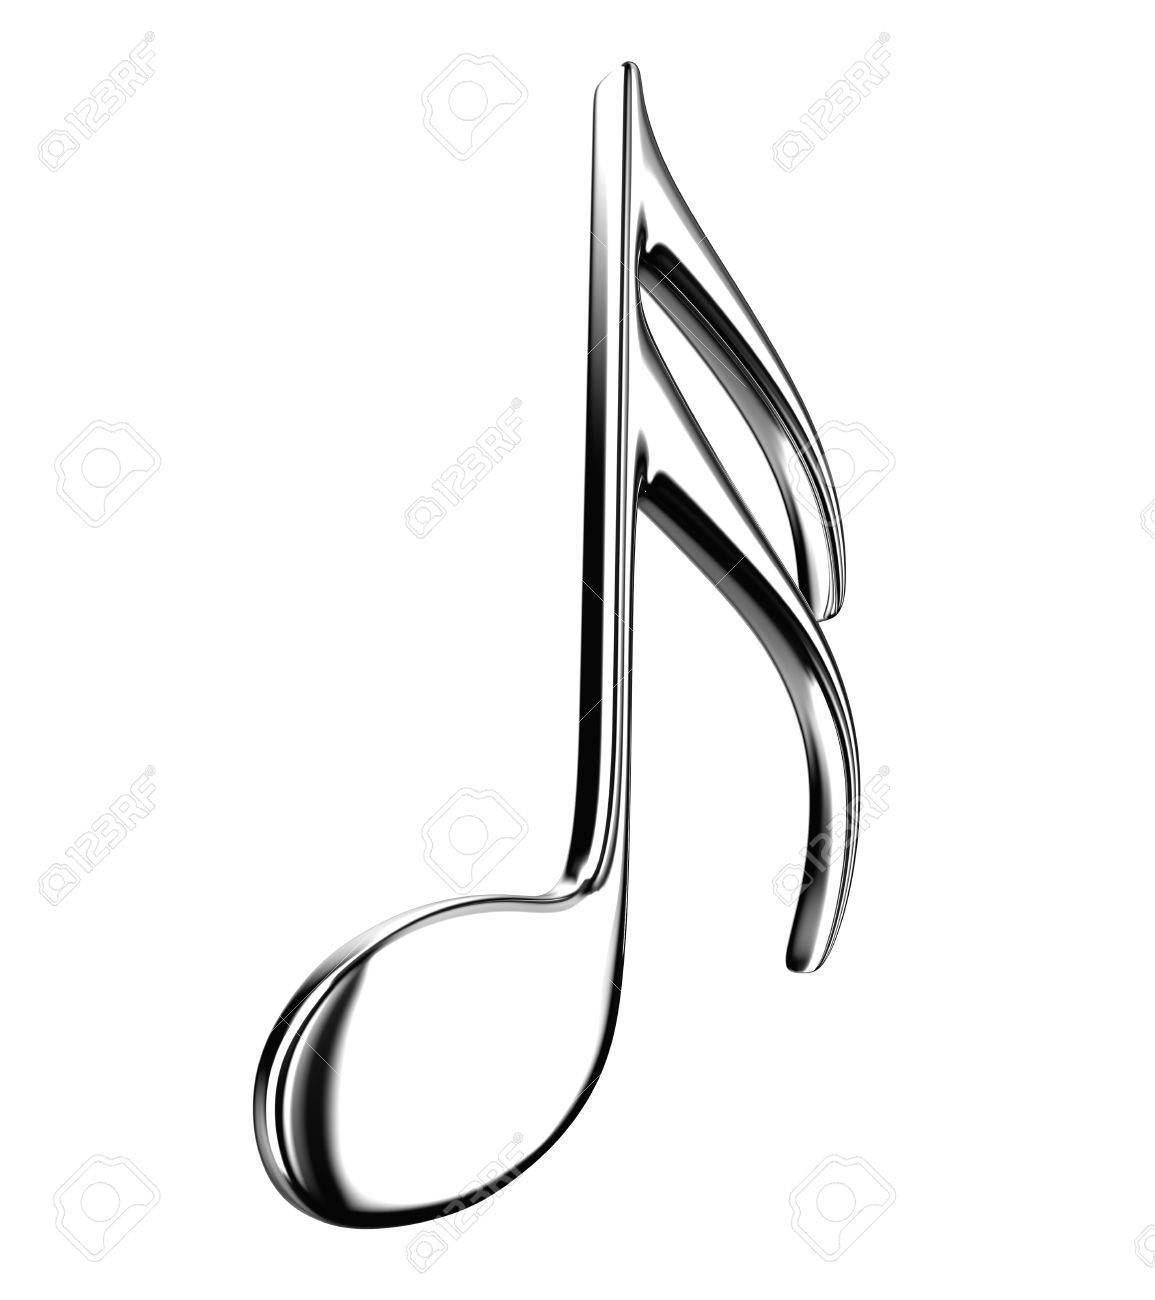 Illustration of the silver note on a white background Stock Photo - 12853441